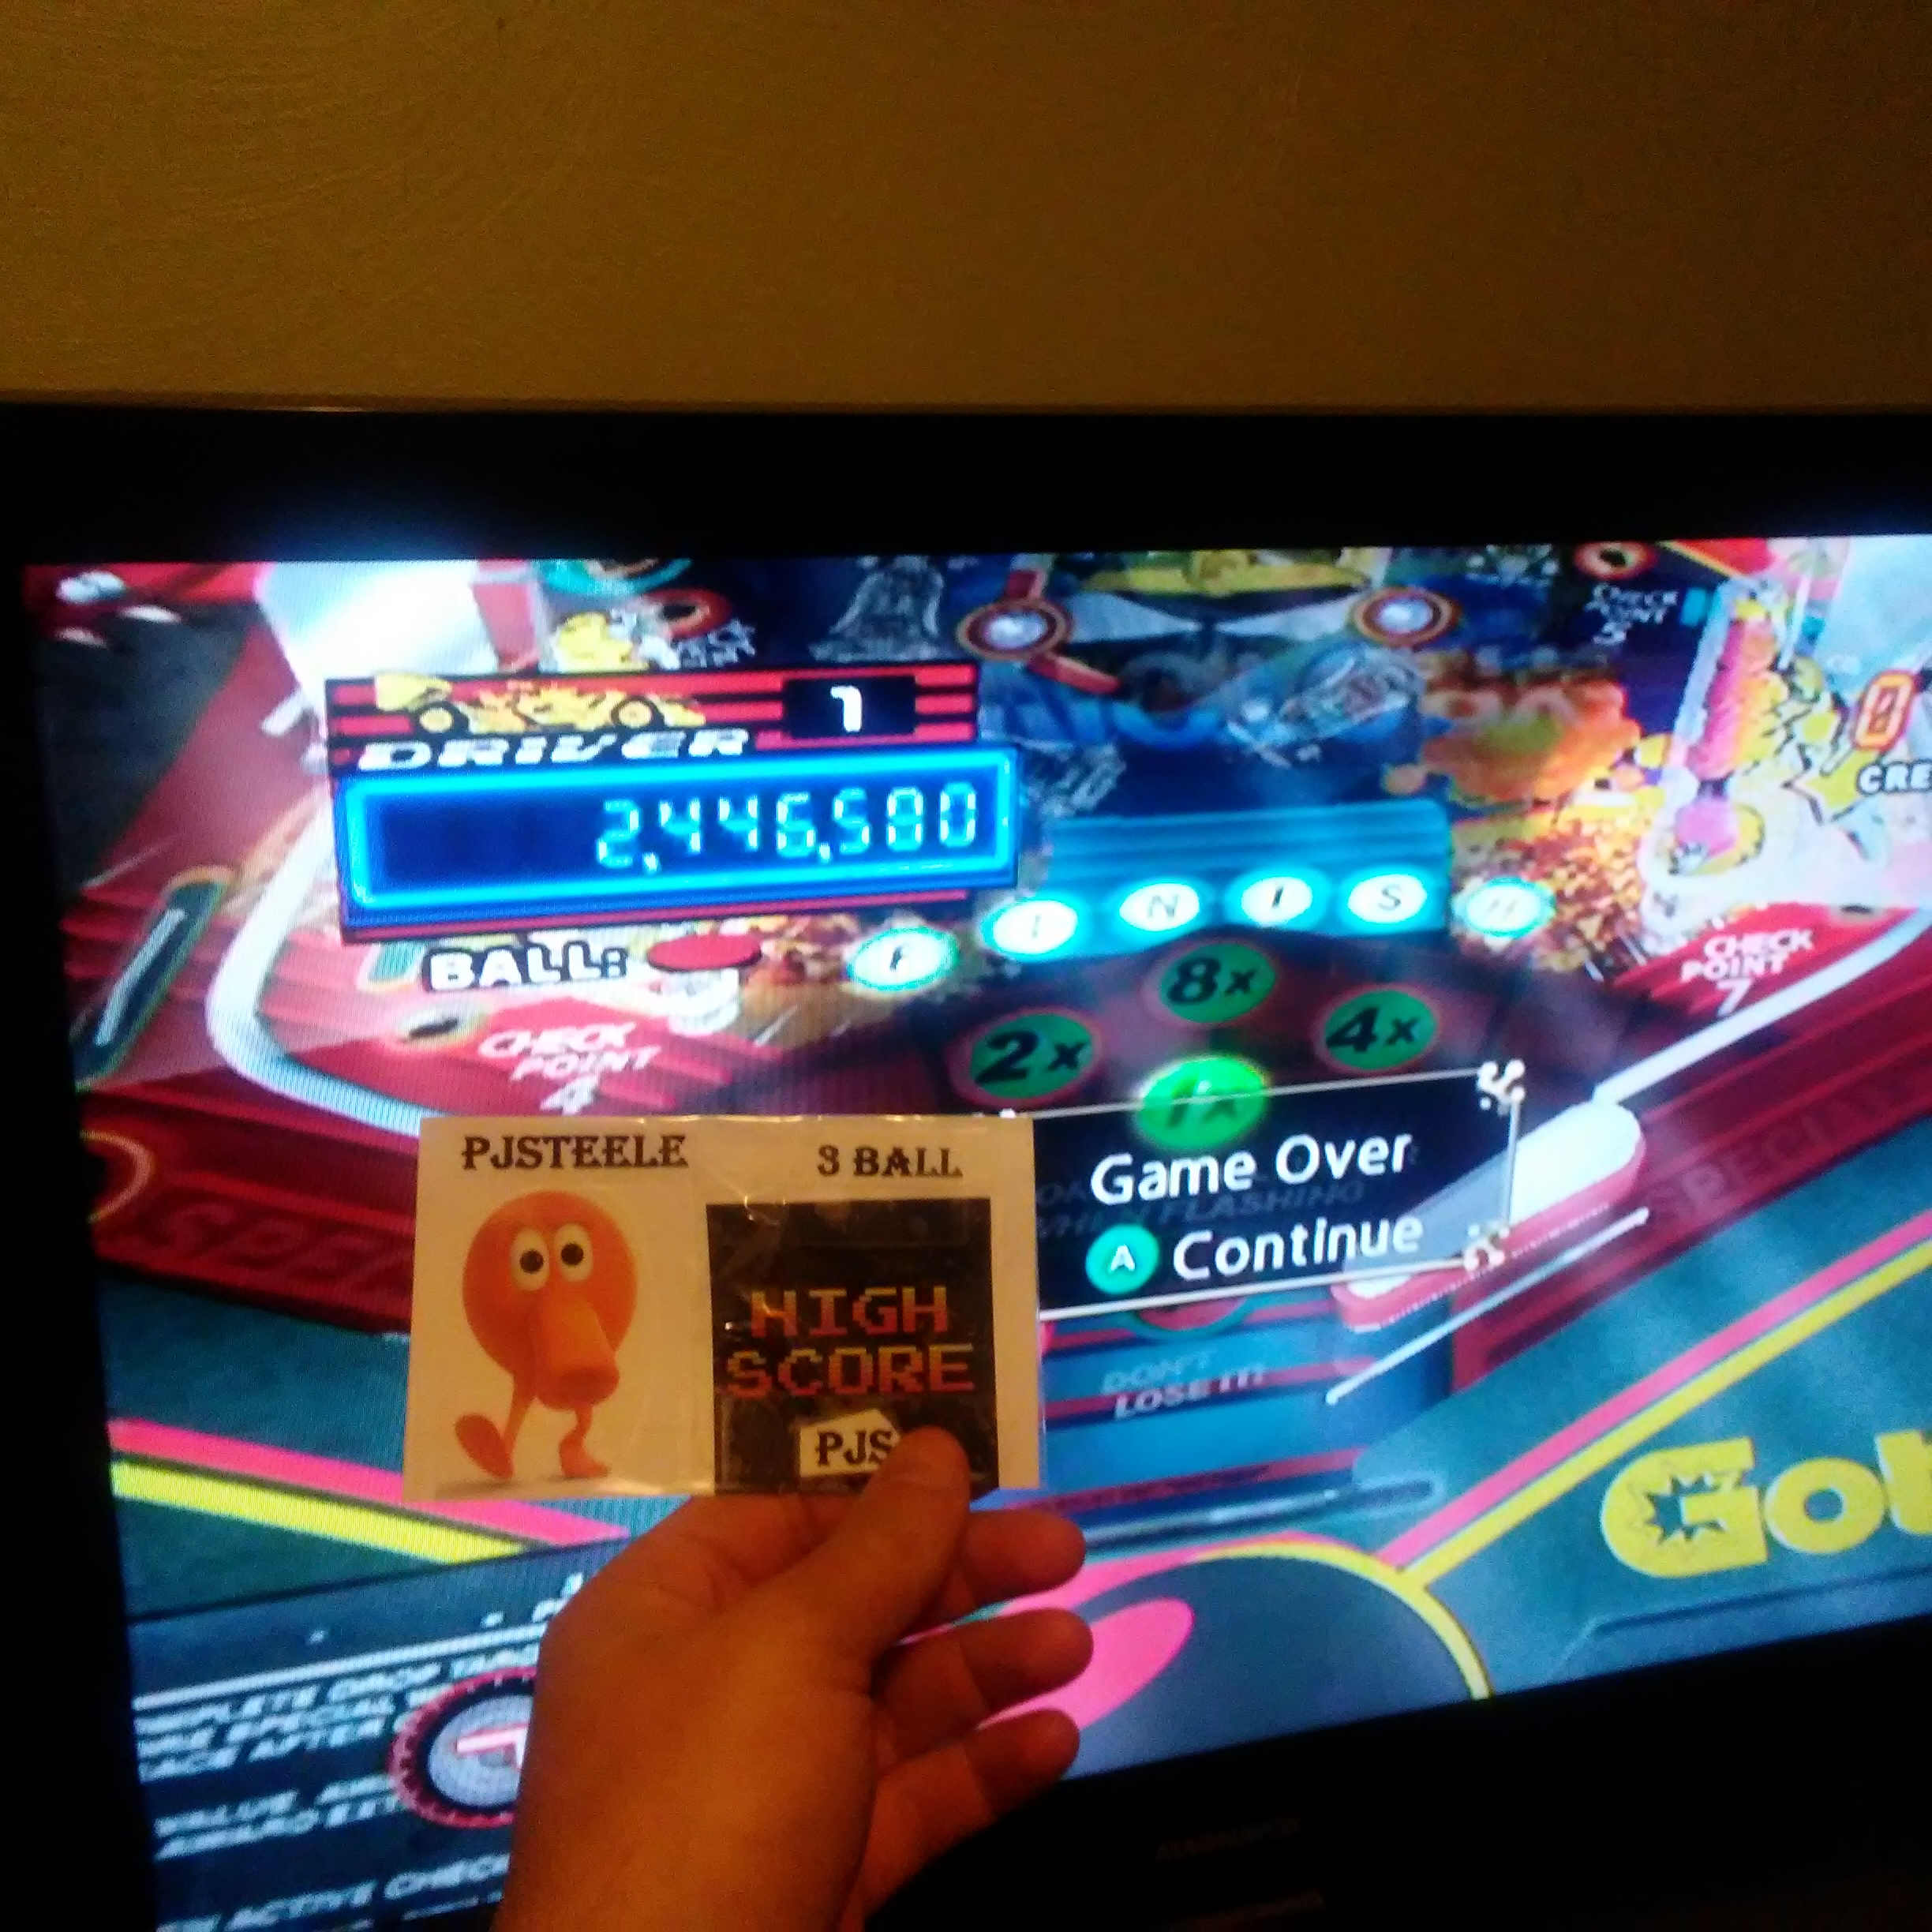 Pinball Hall of Fame: The Gottlieb Collection: Victory [3 Balls] 2,446,580 points